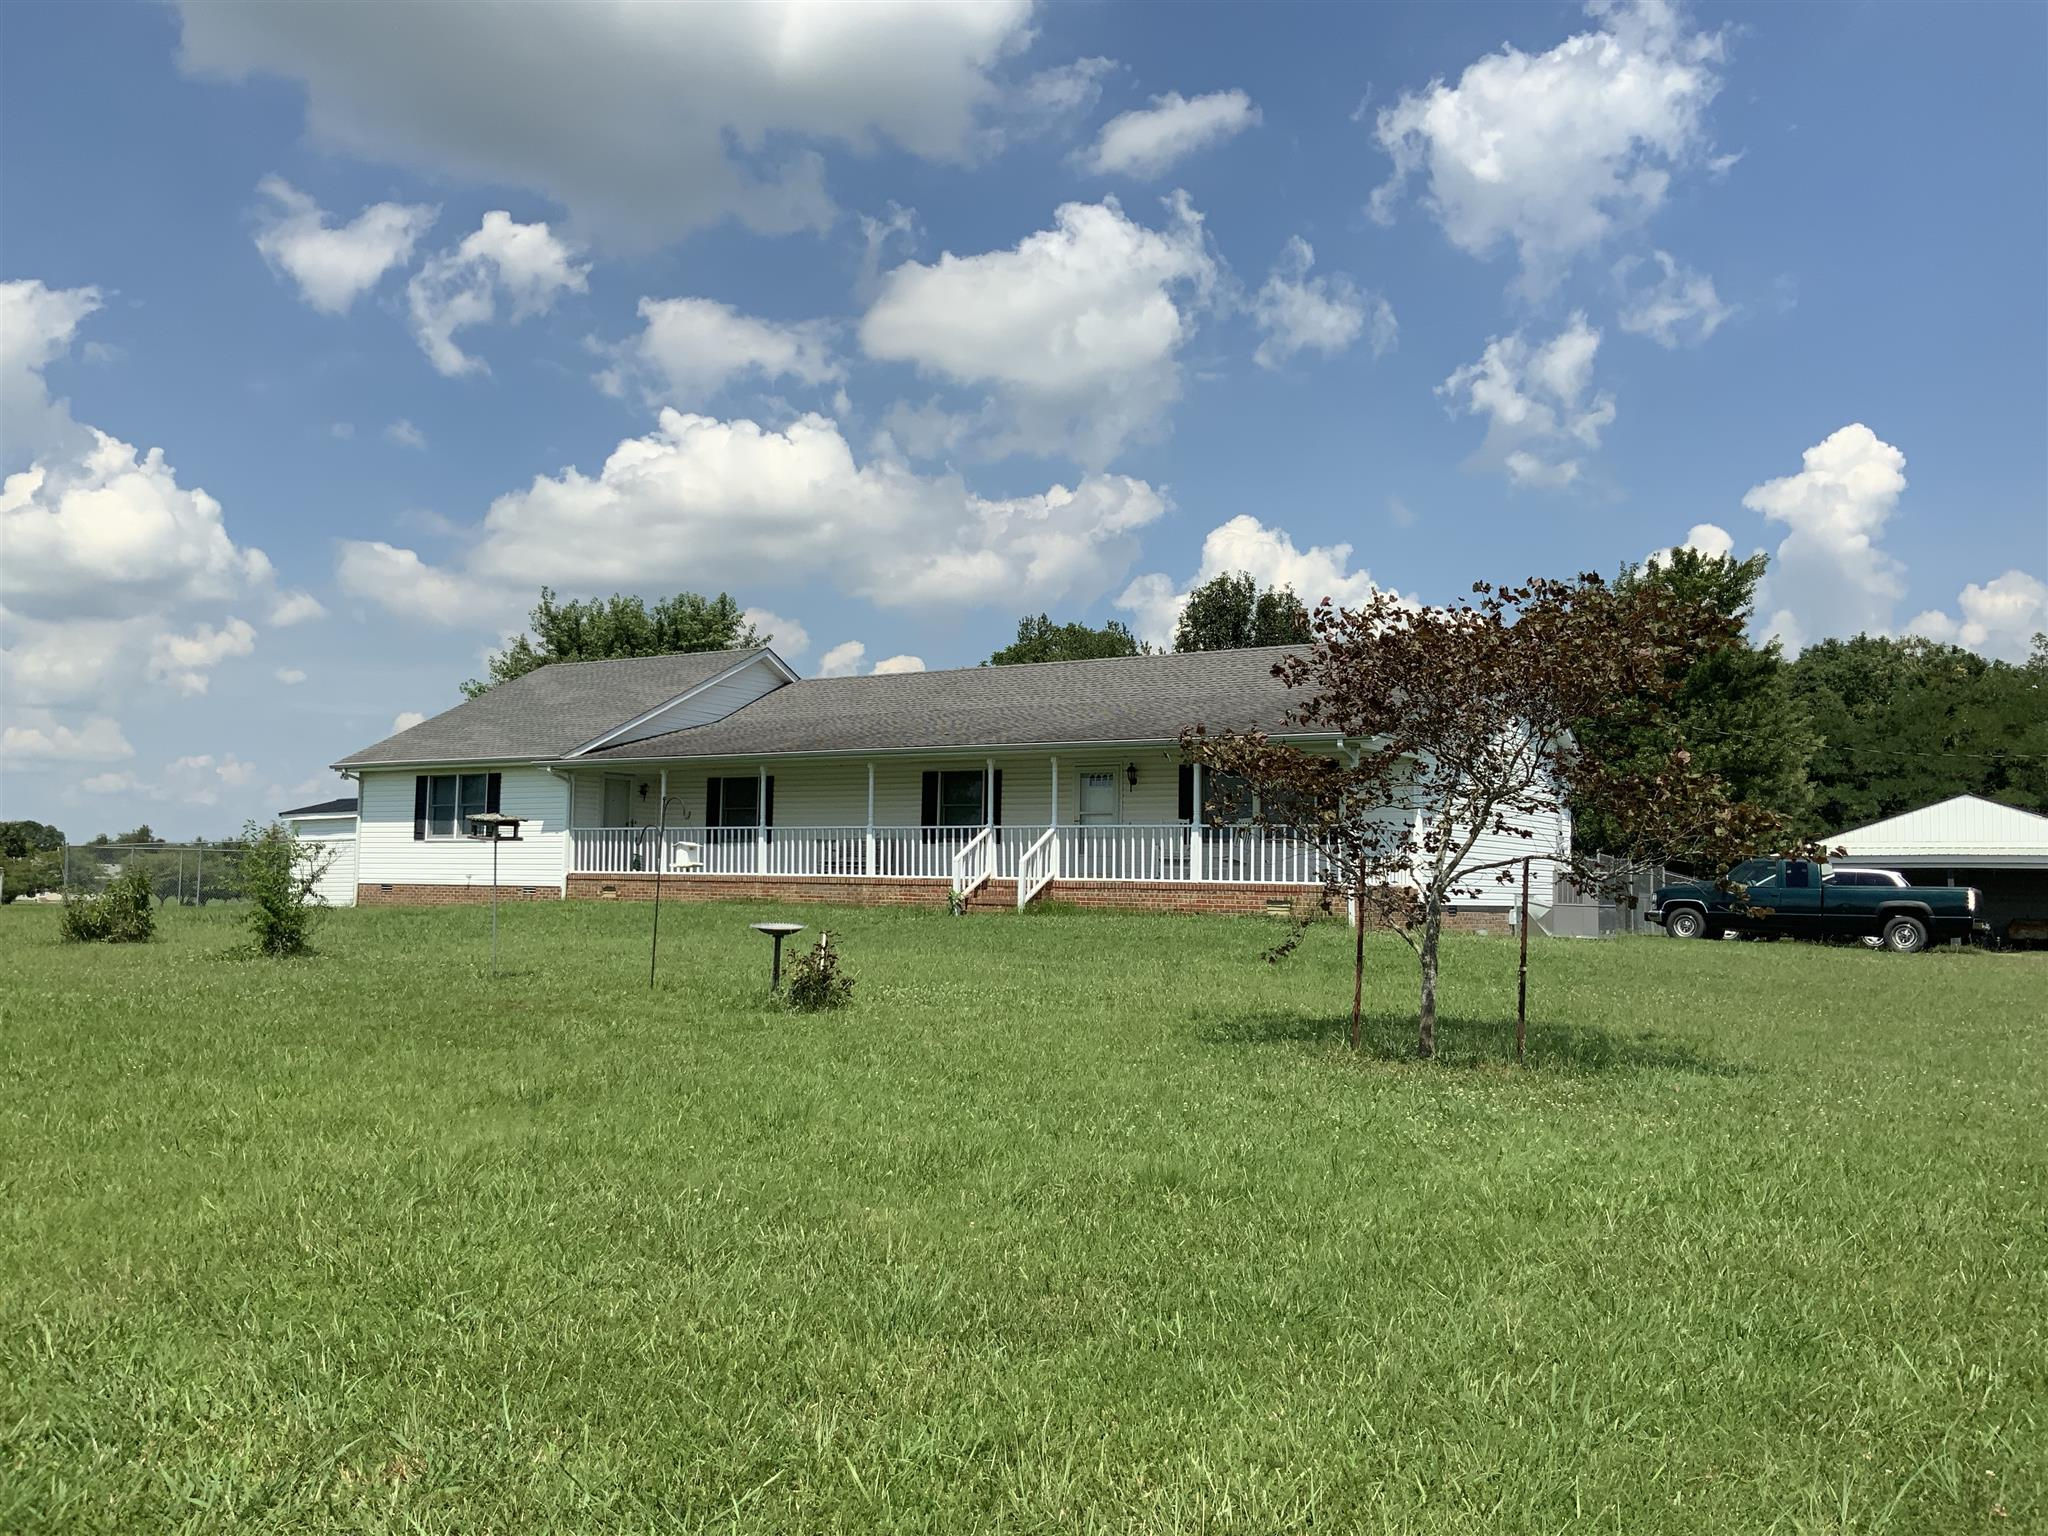 1275 Anderton Rd, Bell Buckle, TN 37020 - Bell Buckle, TN real estate listing